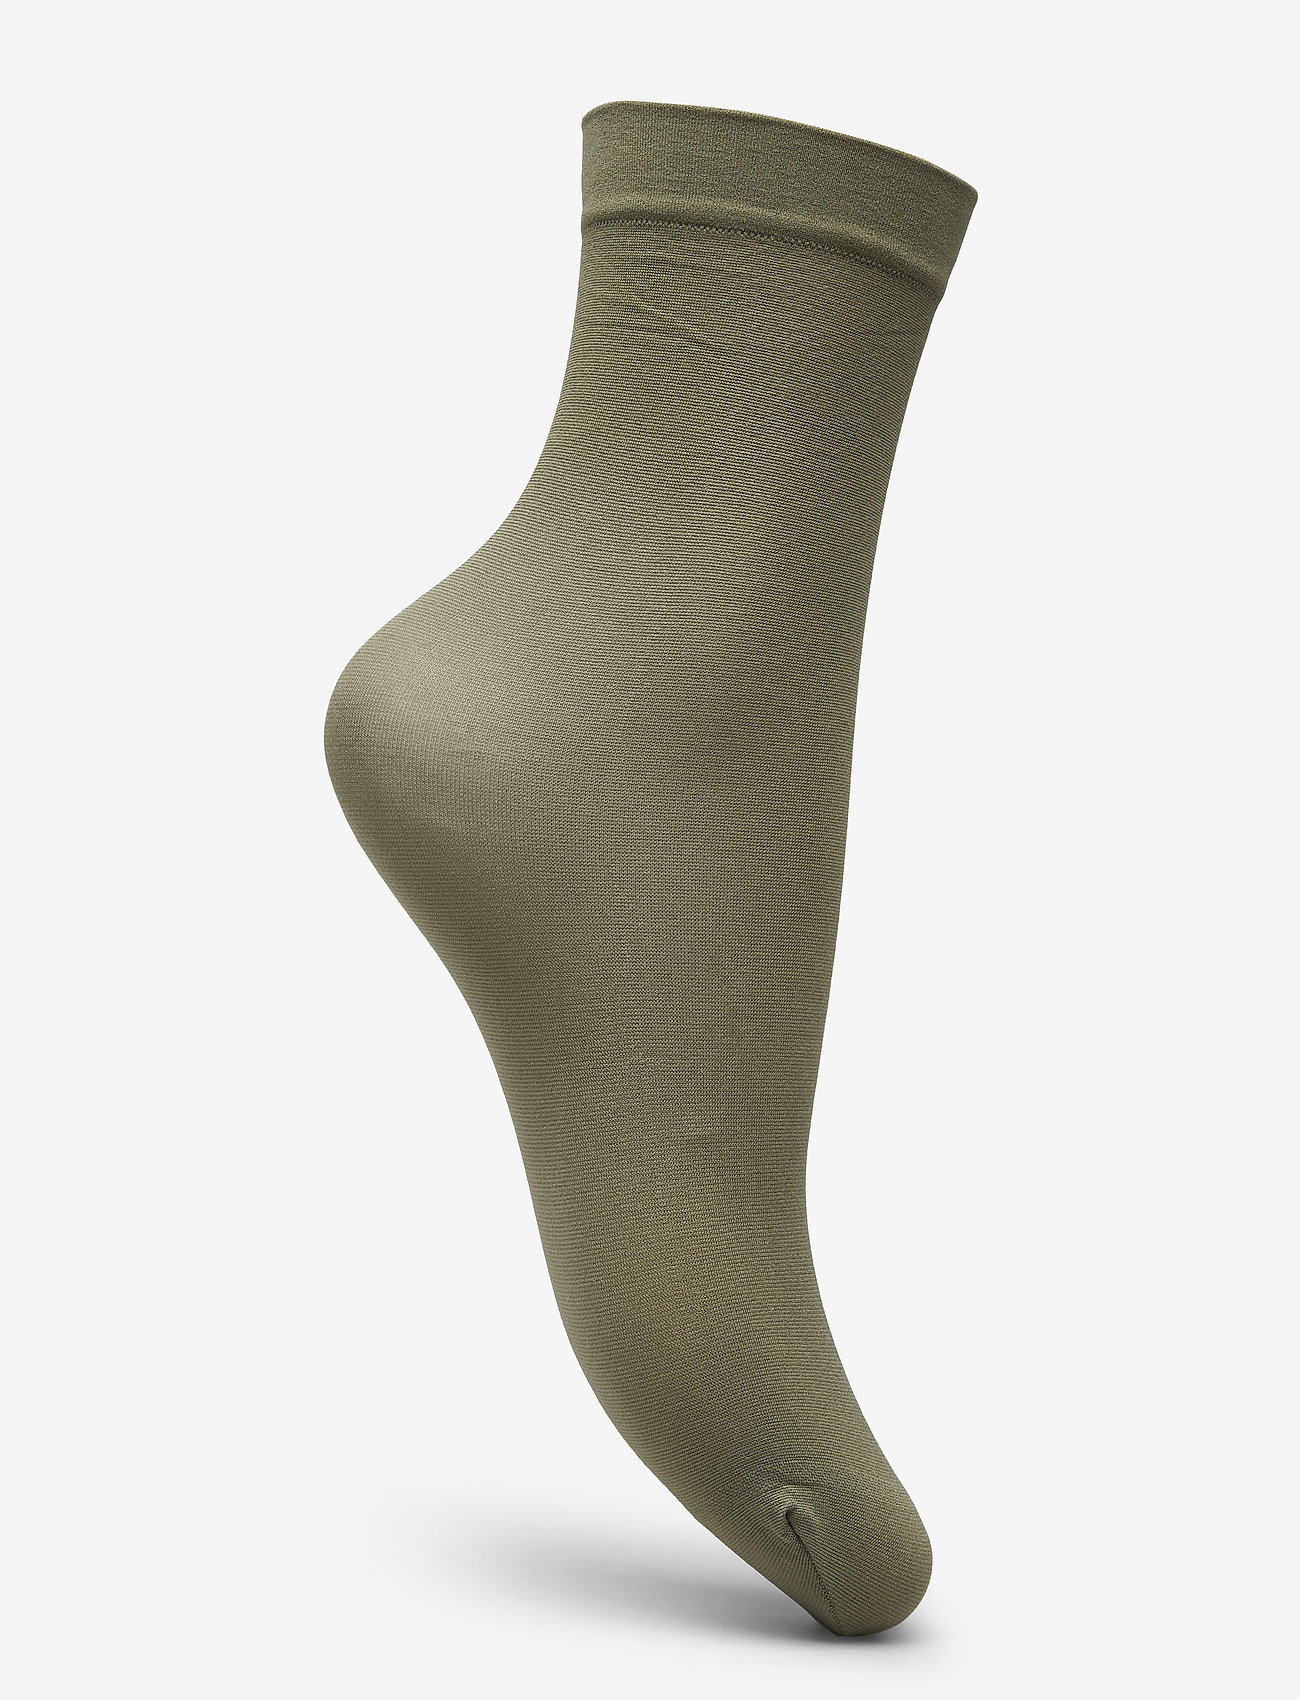 Vogue - Ladies anklesock den, Opaque Sock 40 - footies - olive - 1